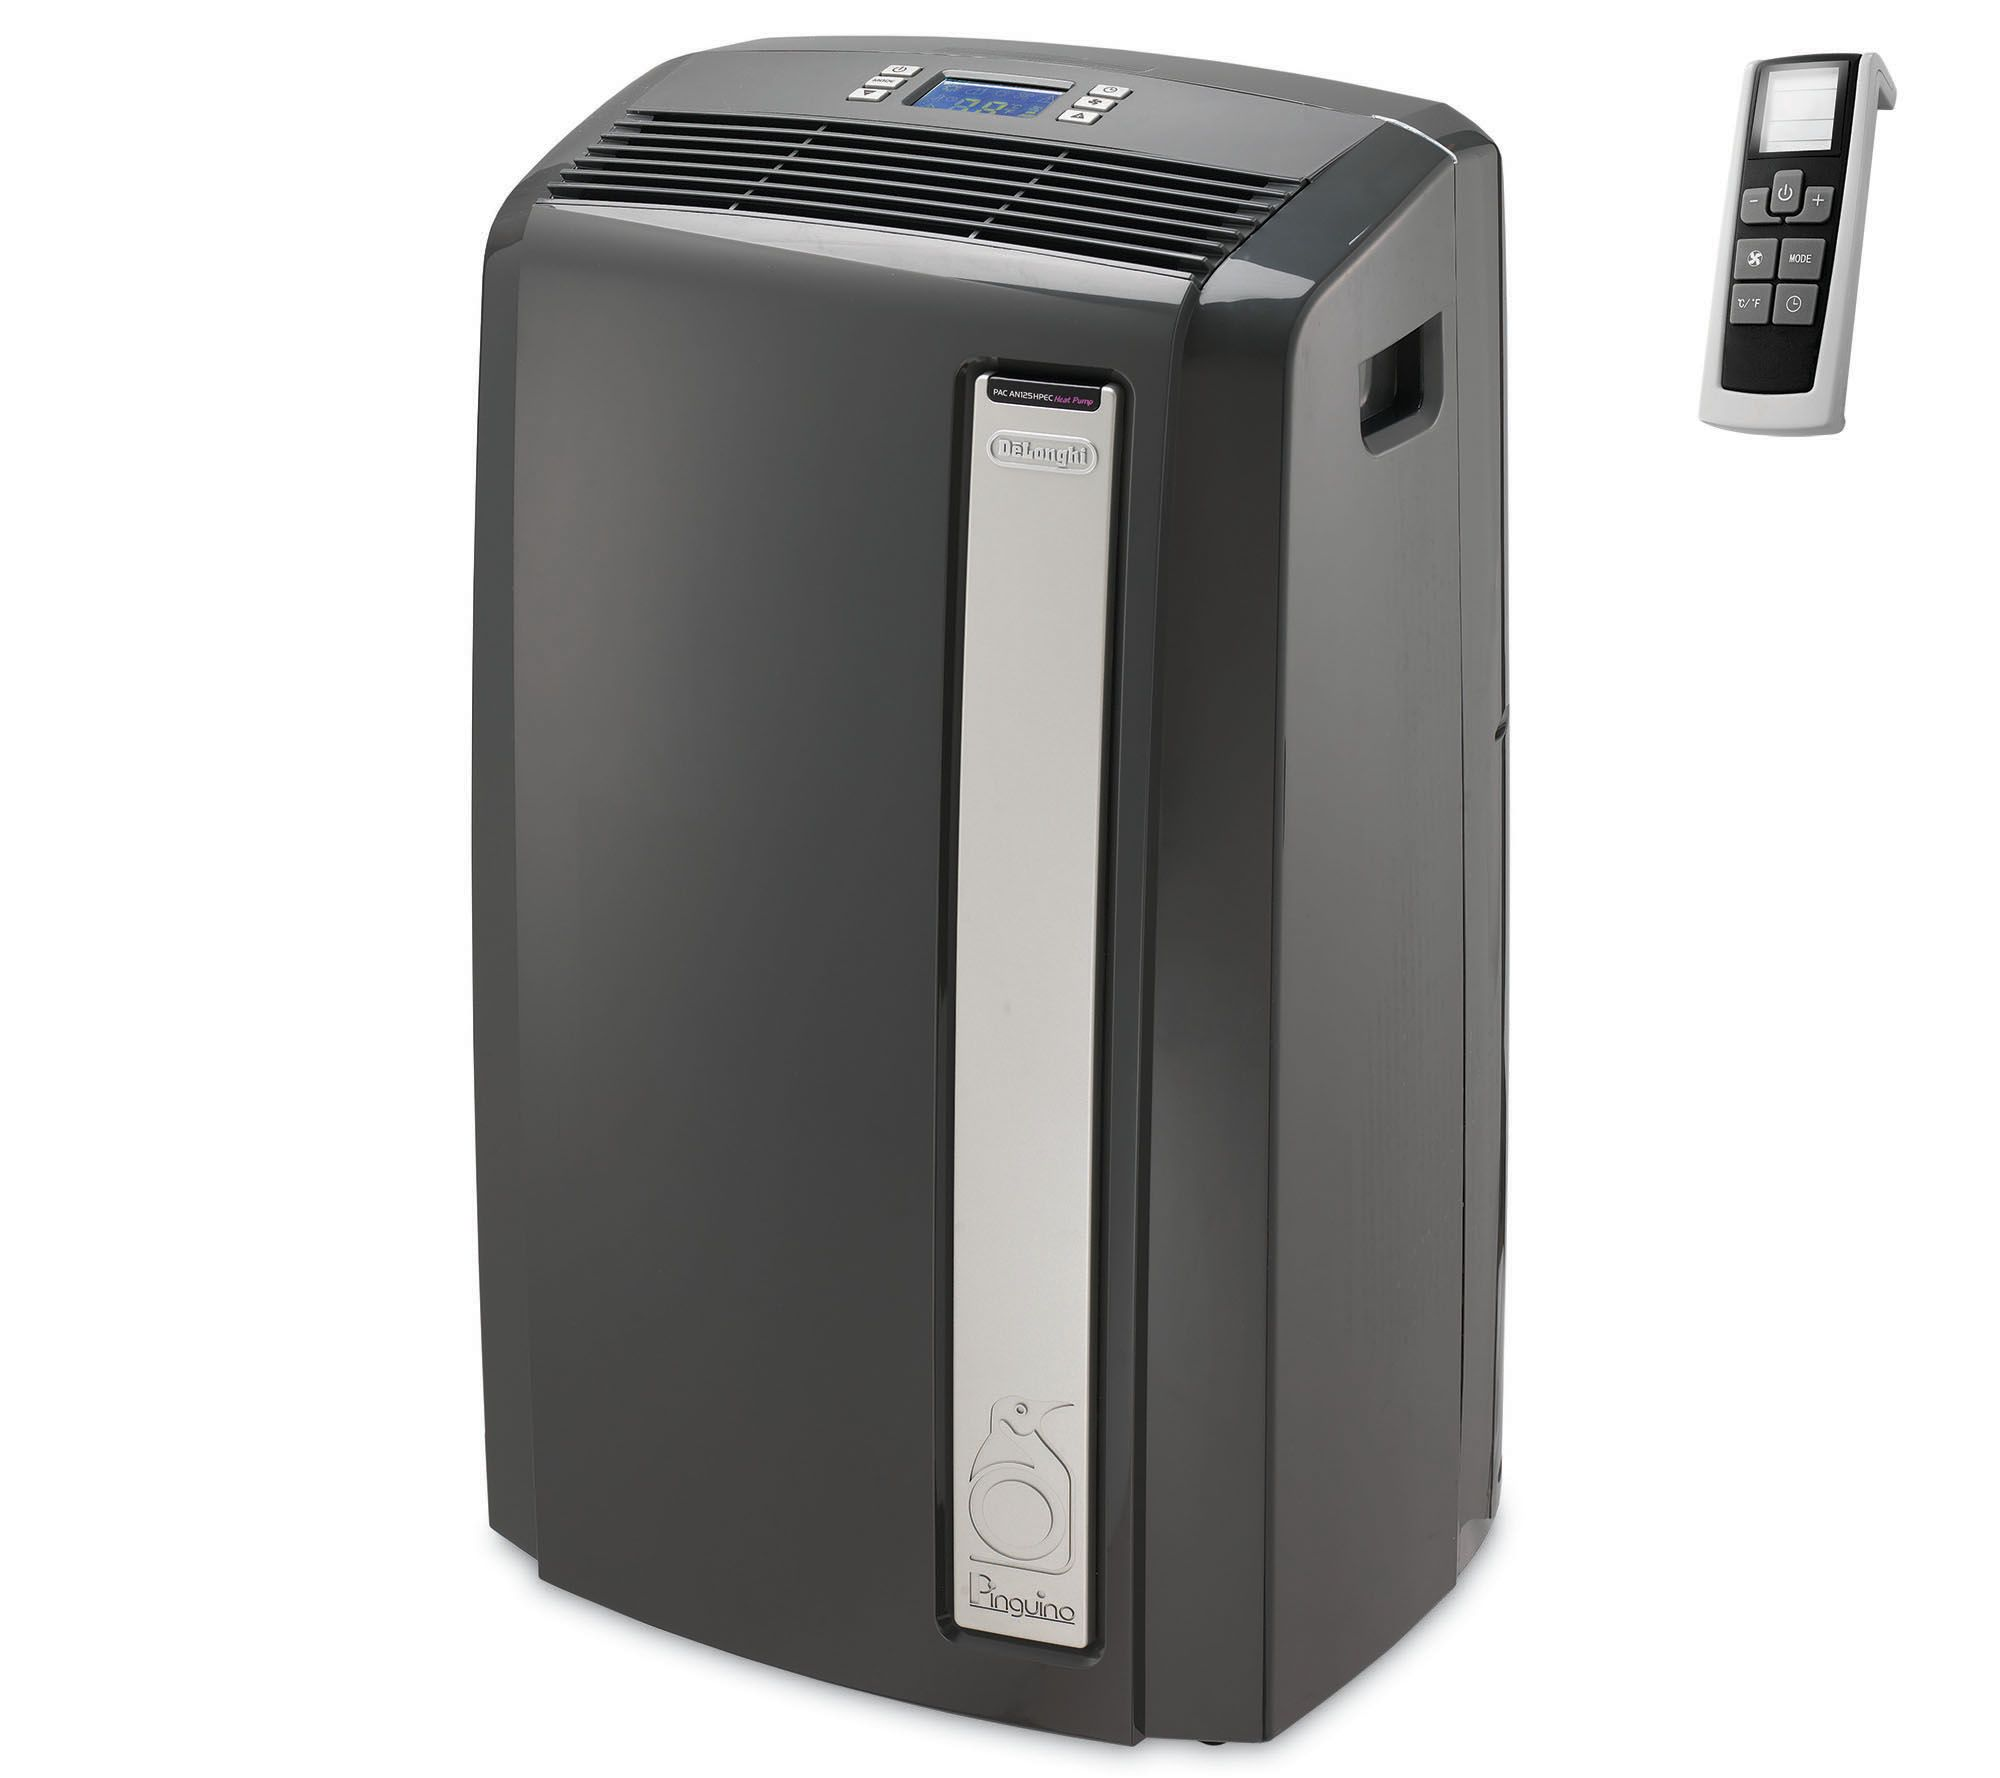 DeLonghi 4-in-1 480 sq. ft. Portable Air Conditioner with Heat - Page 1 —  QVC.com